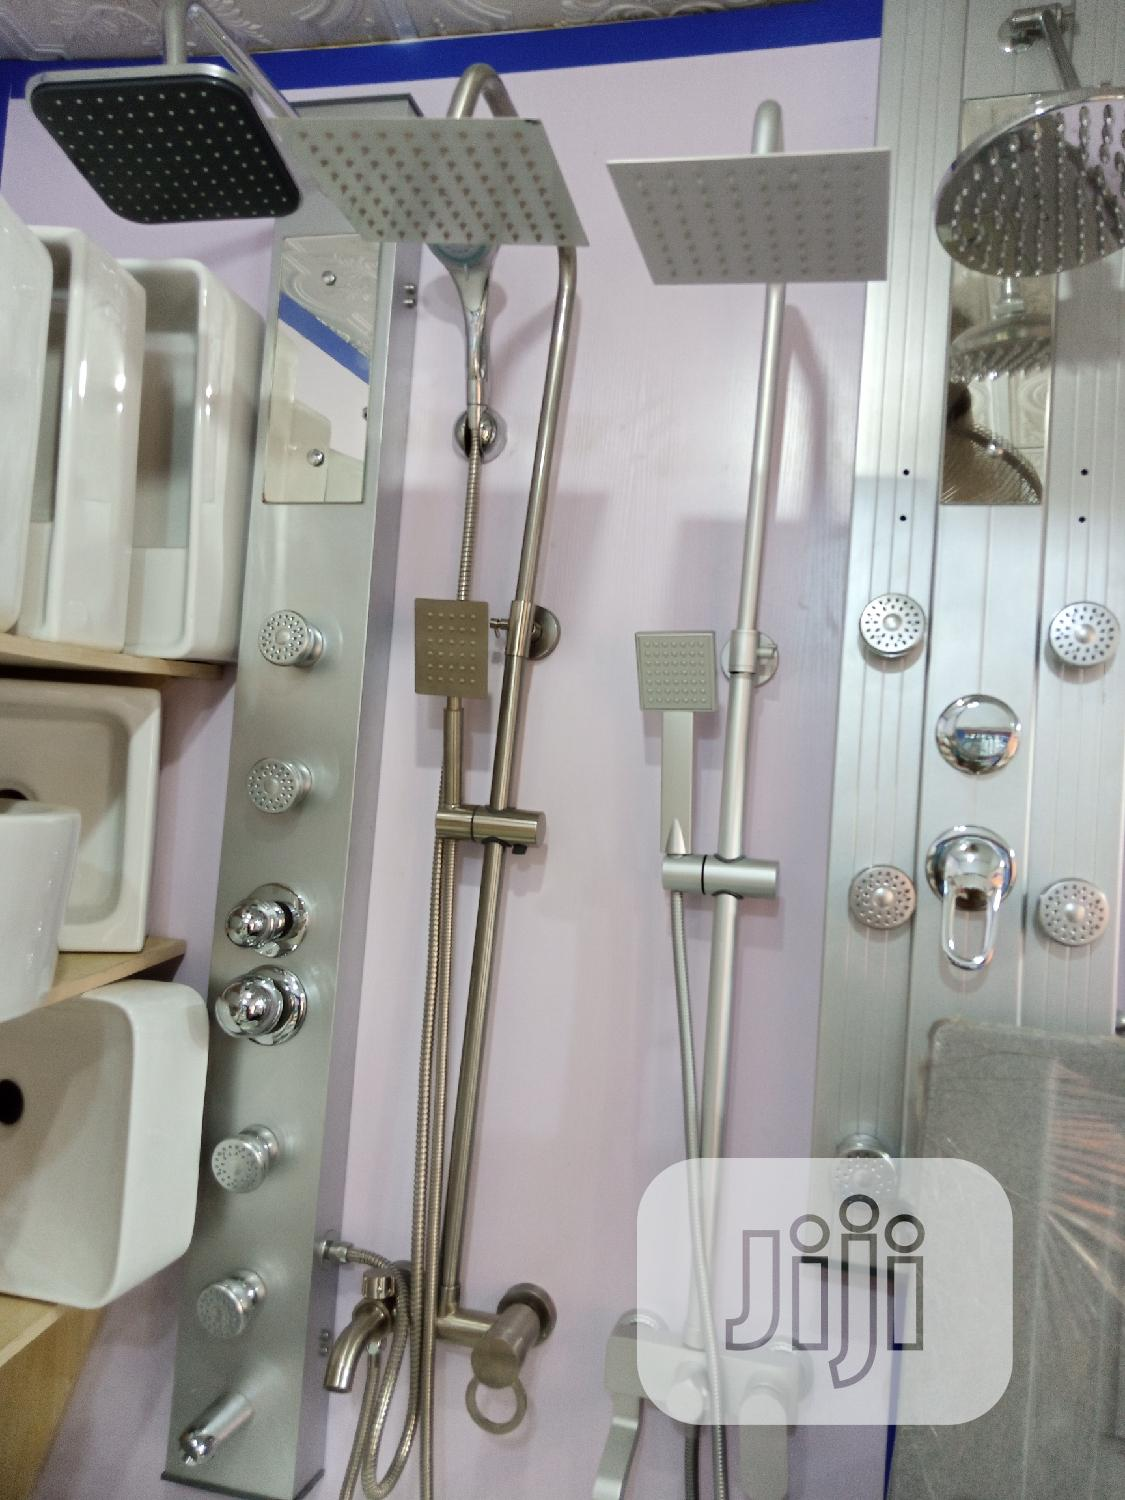 Antirust Standing Shower | Plumbing & Water Supply for sale in Orile, Lagos State, Nigeria